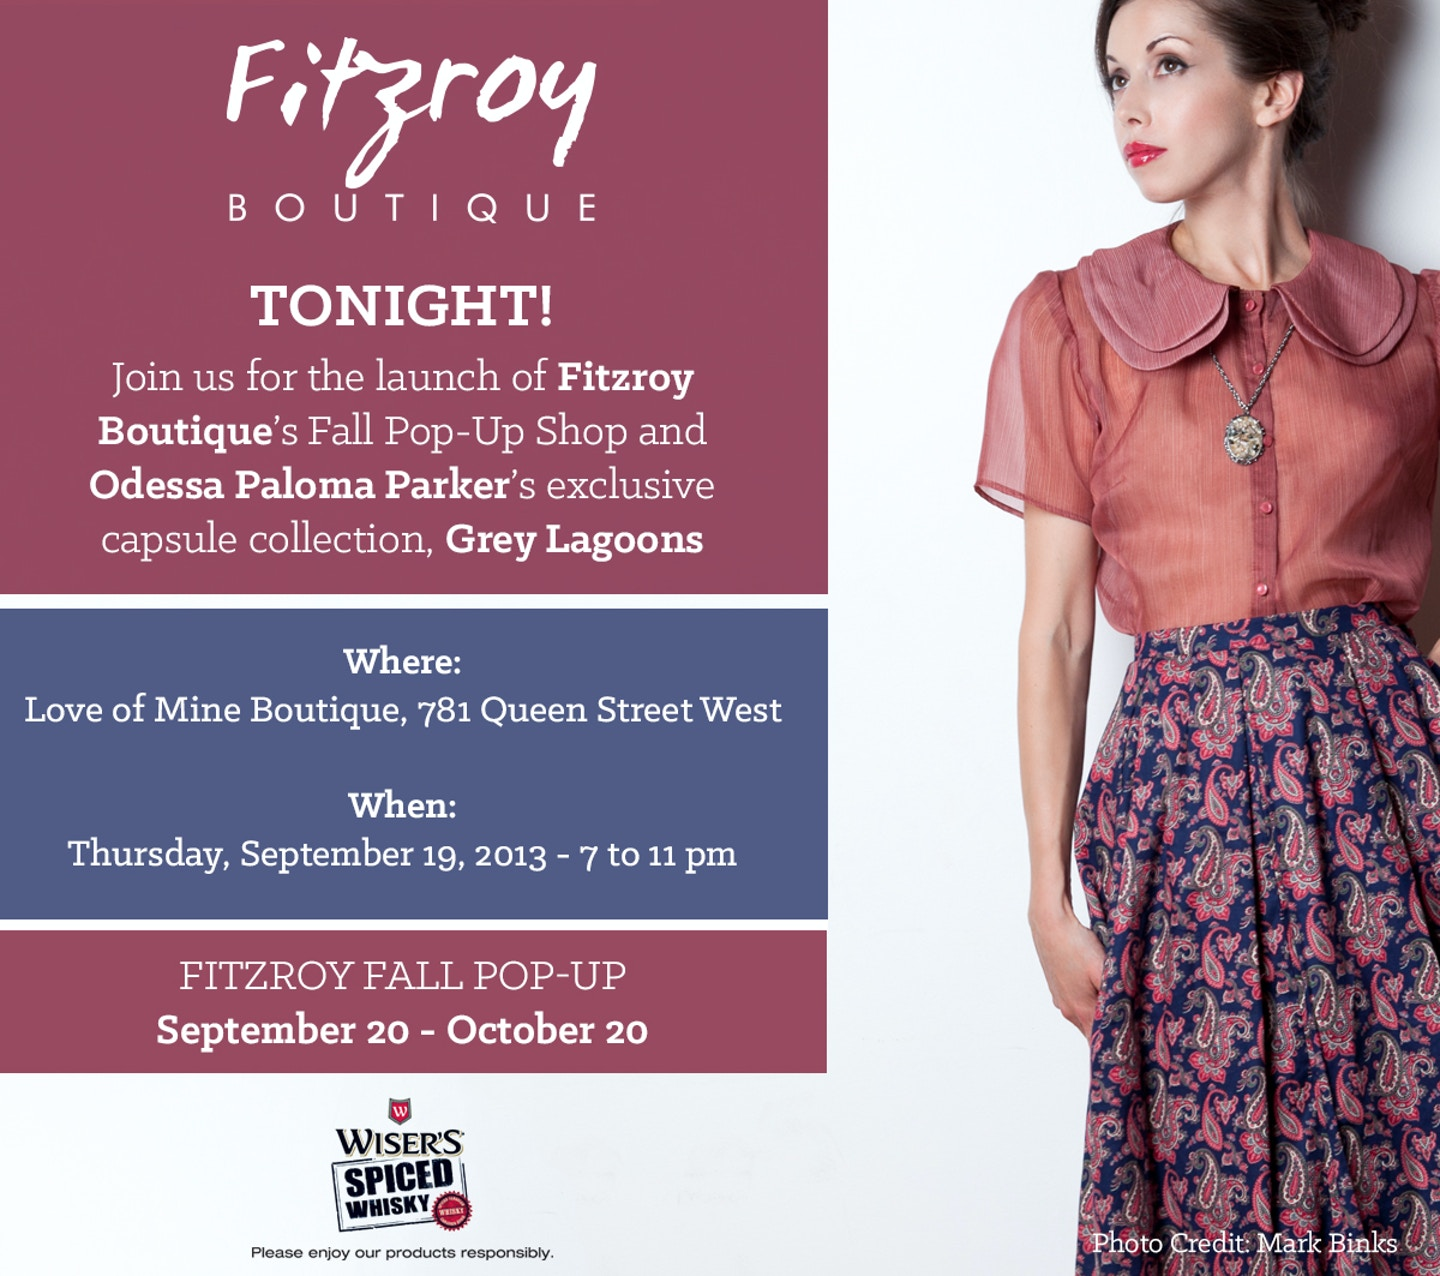 Fitzroy Boutique Fall Pop-Up & Preview